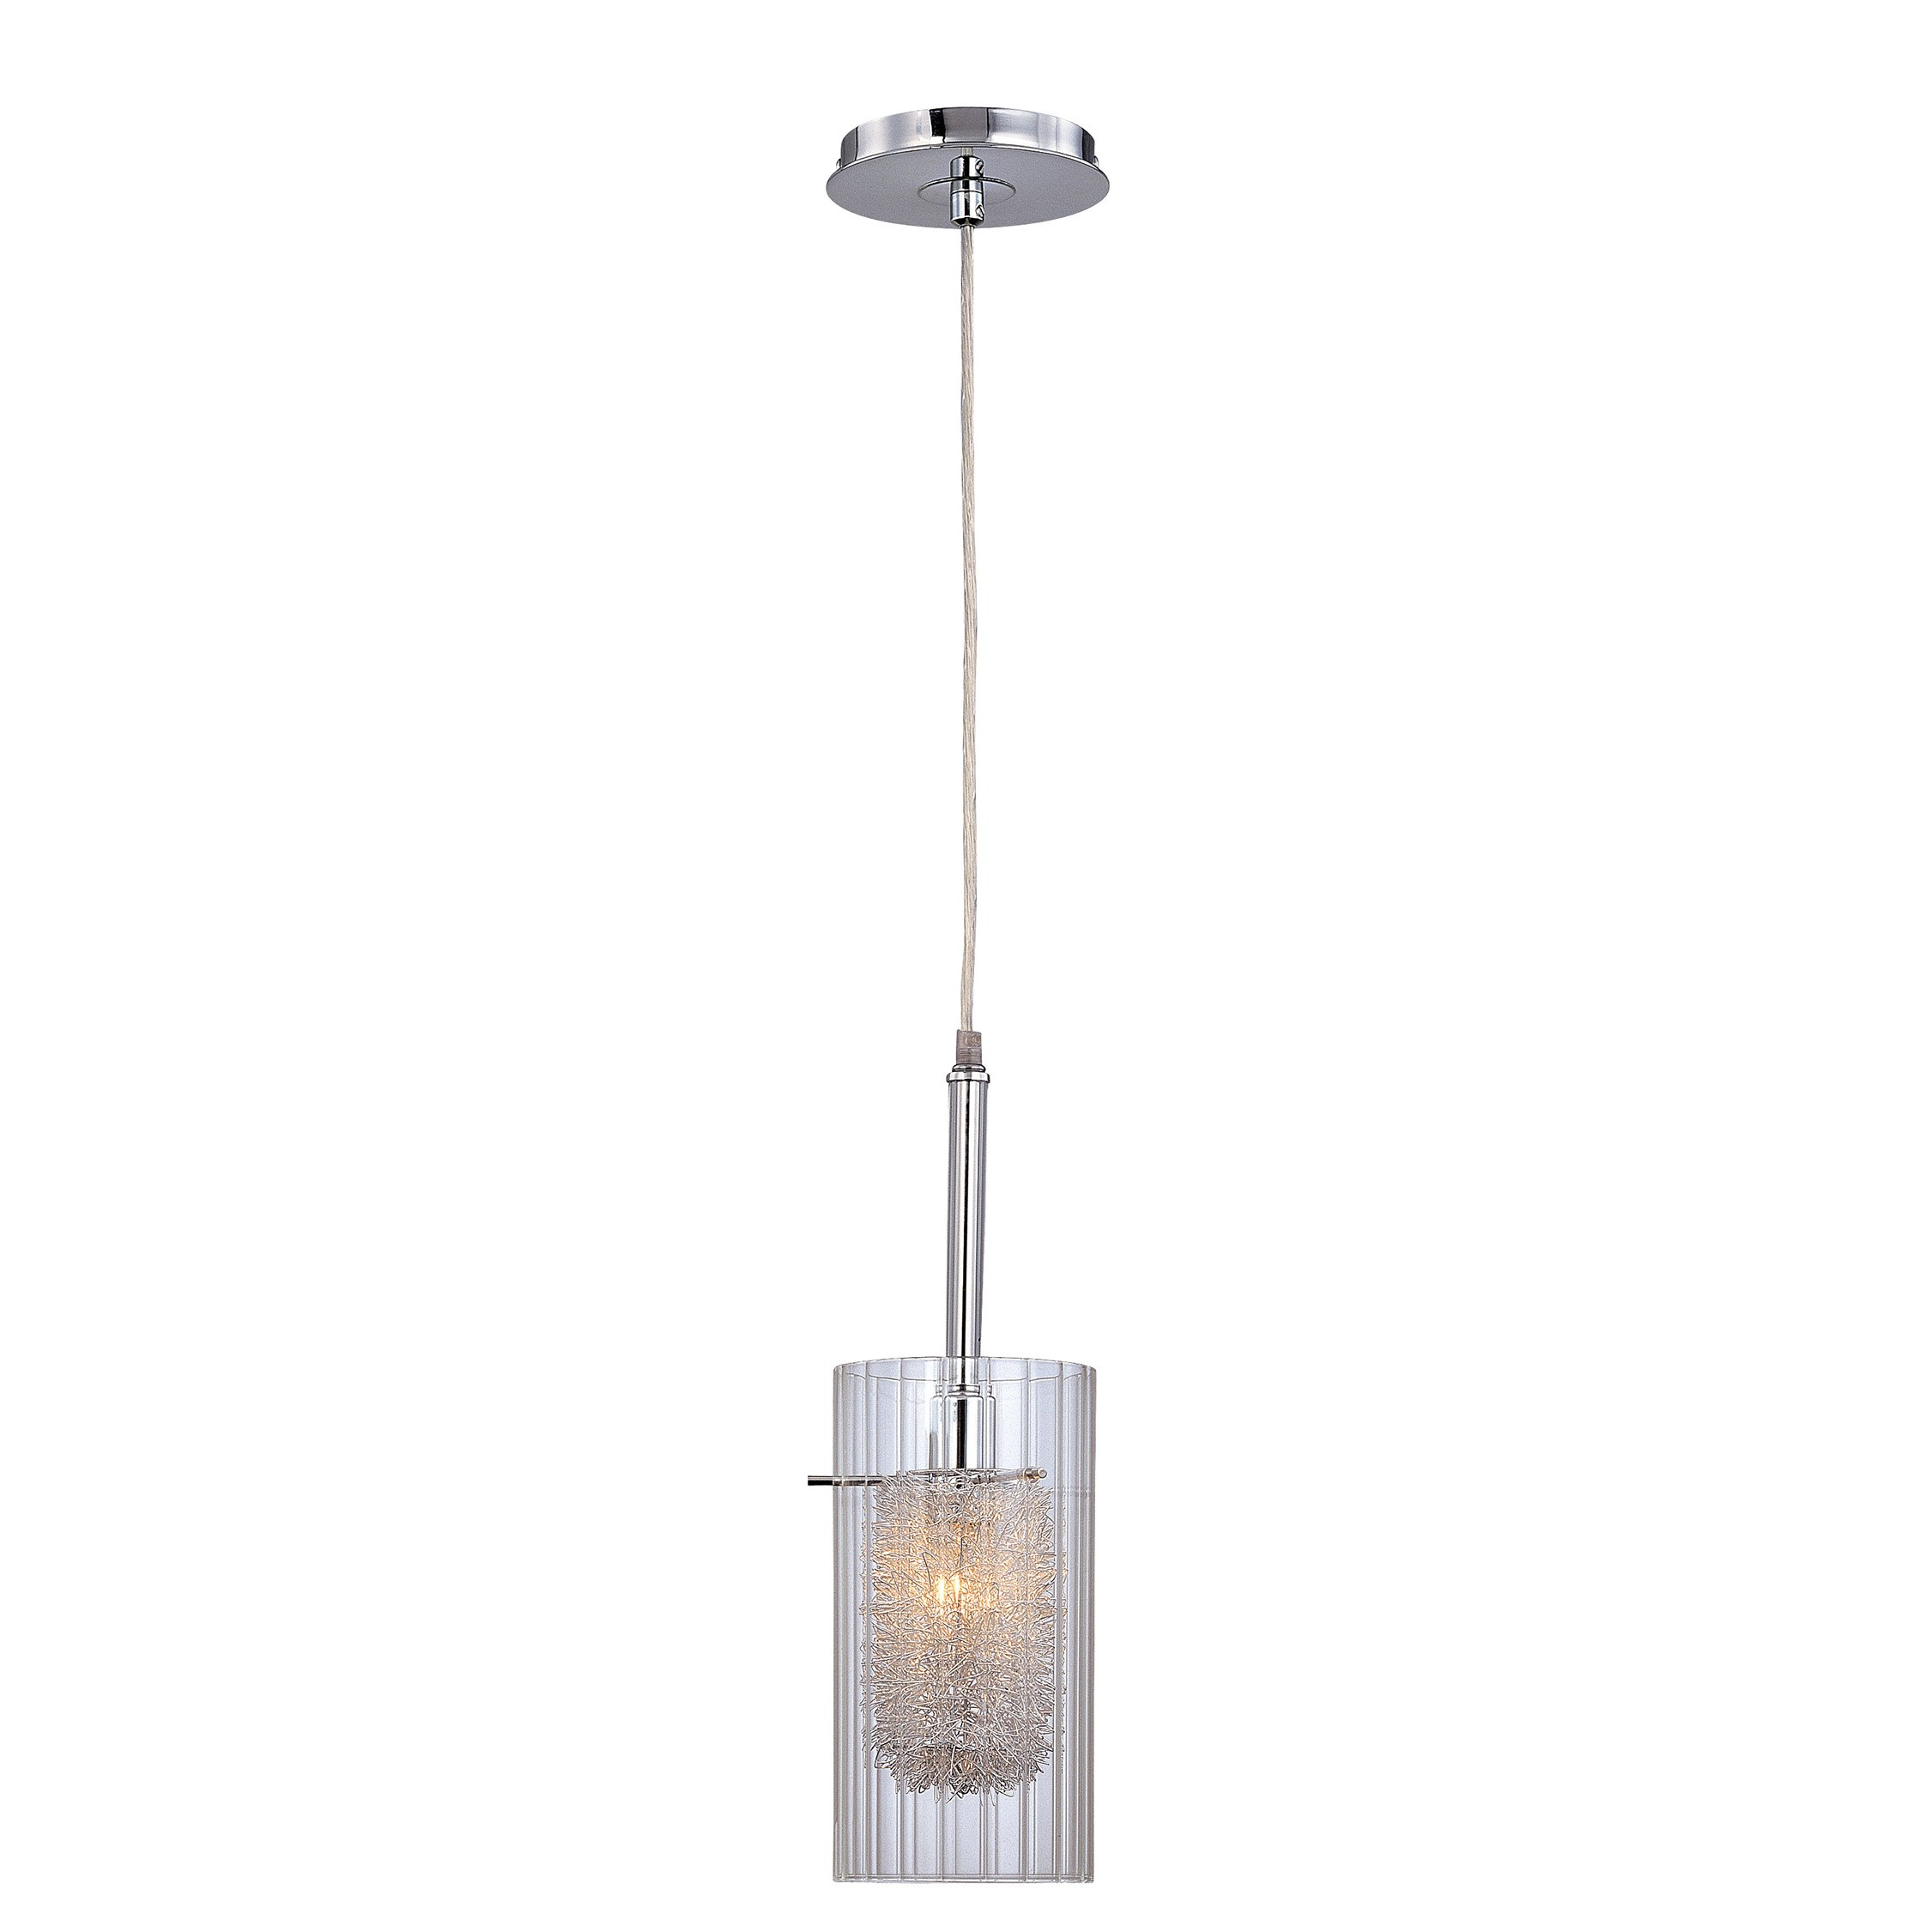 Add interest to any room with this creatively designed pendant lamp. This 1 light Pendant from the Caldwell collection by Lite Source will enhance your home with a perfect mix of form and function. The features include a Chrome finish applied by experts. Available for Online Purchase Only. Not eligible for 5 Star Express Delivery. Includes (1) 40 watt candelabra (E12) bulb Hardwiring and assembly required UL listed Cylinder slit glass shade Designed to cast a soft ambient light over a wide area